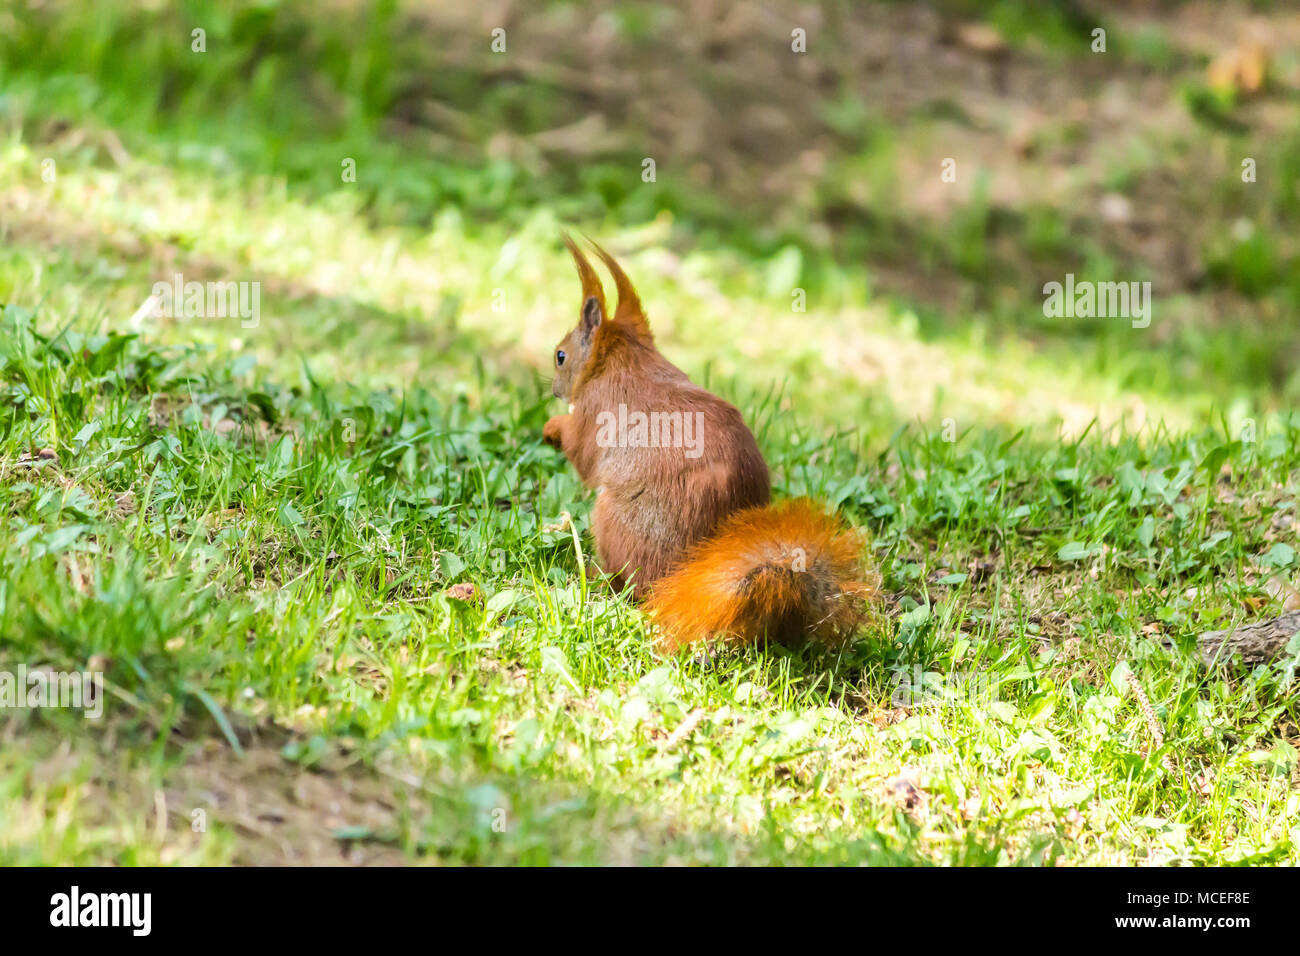 Rufous squirrel descended from the tree onto the green grass. He is looking for food in the spring young grass after winter. - Stock Image